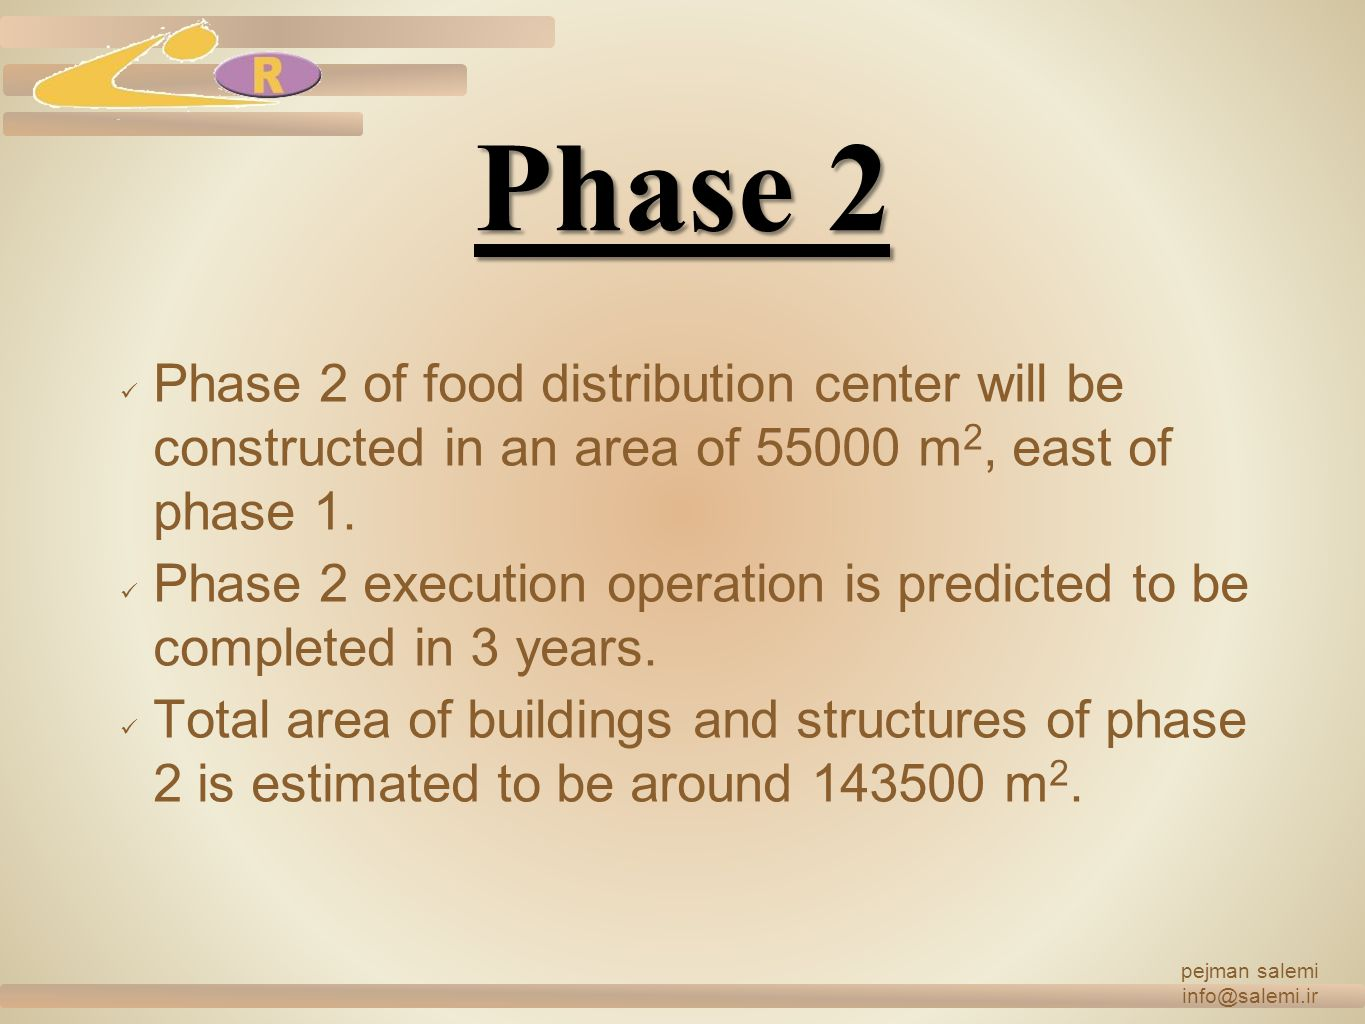 pejman salemi info@salemi.ir. Phase 2. Phase 2 of food distribution center will be constructed in an area of 55000 m2, east of phase 1.